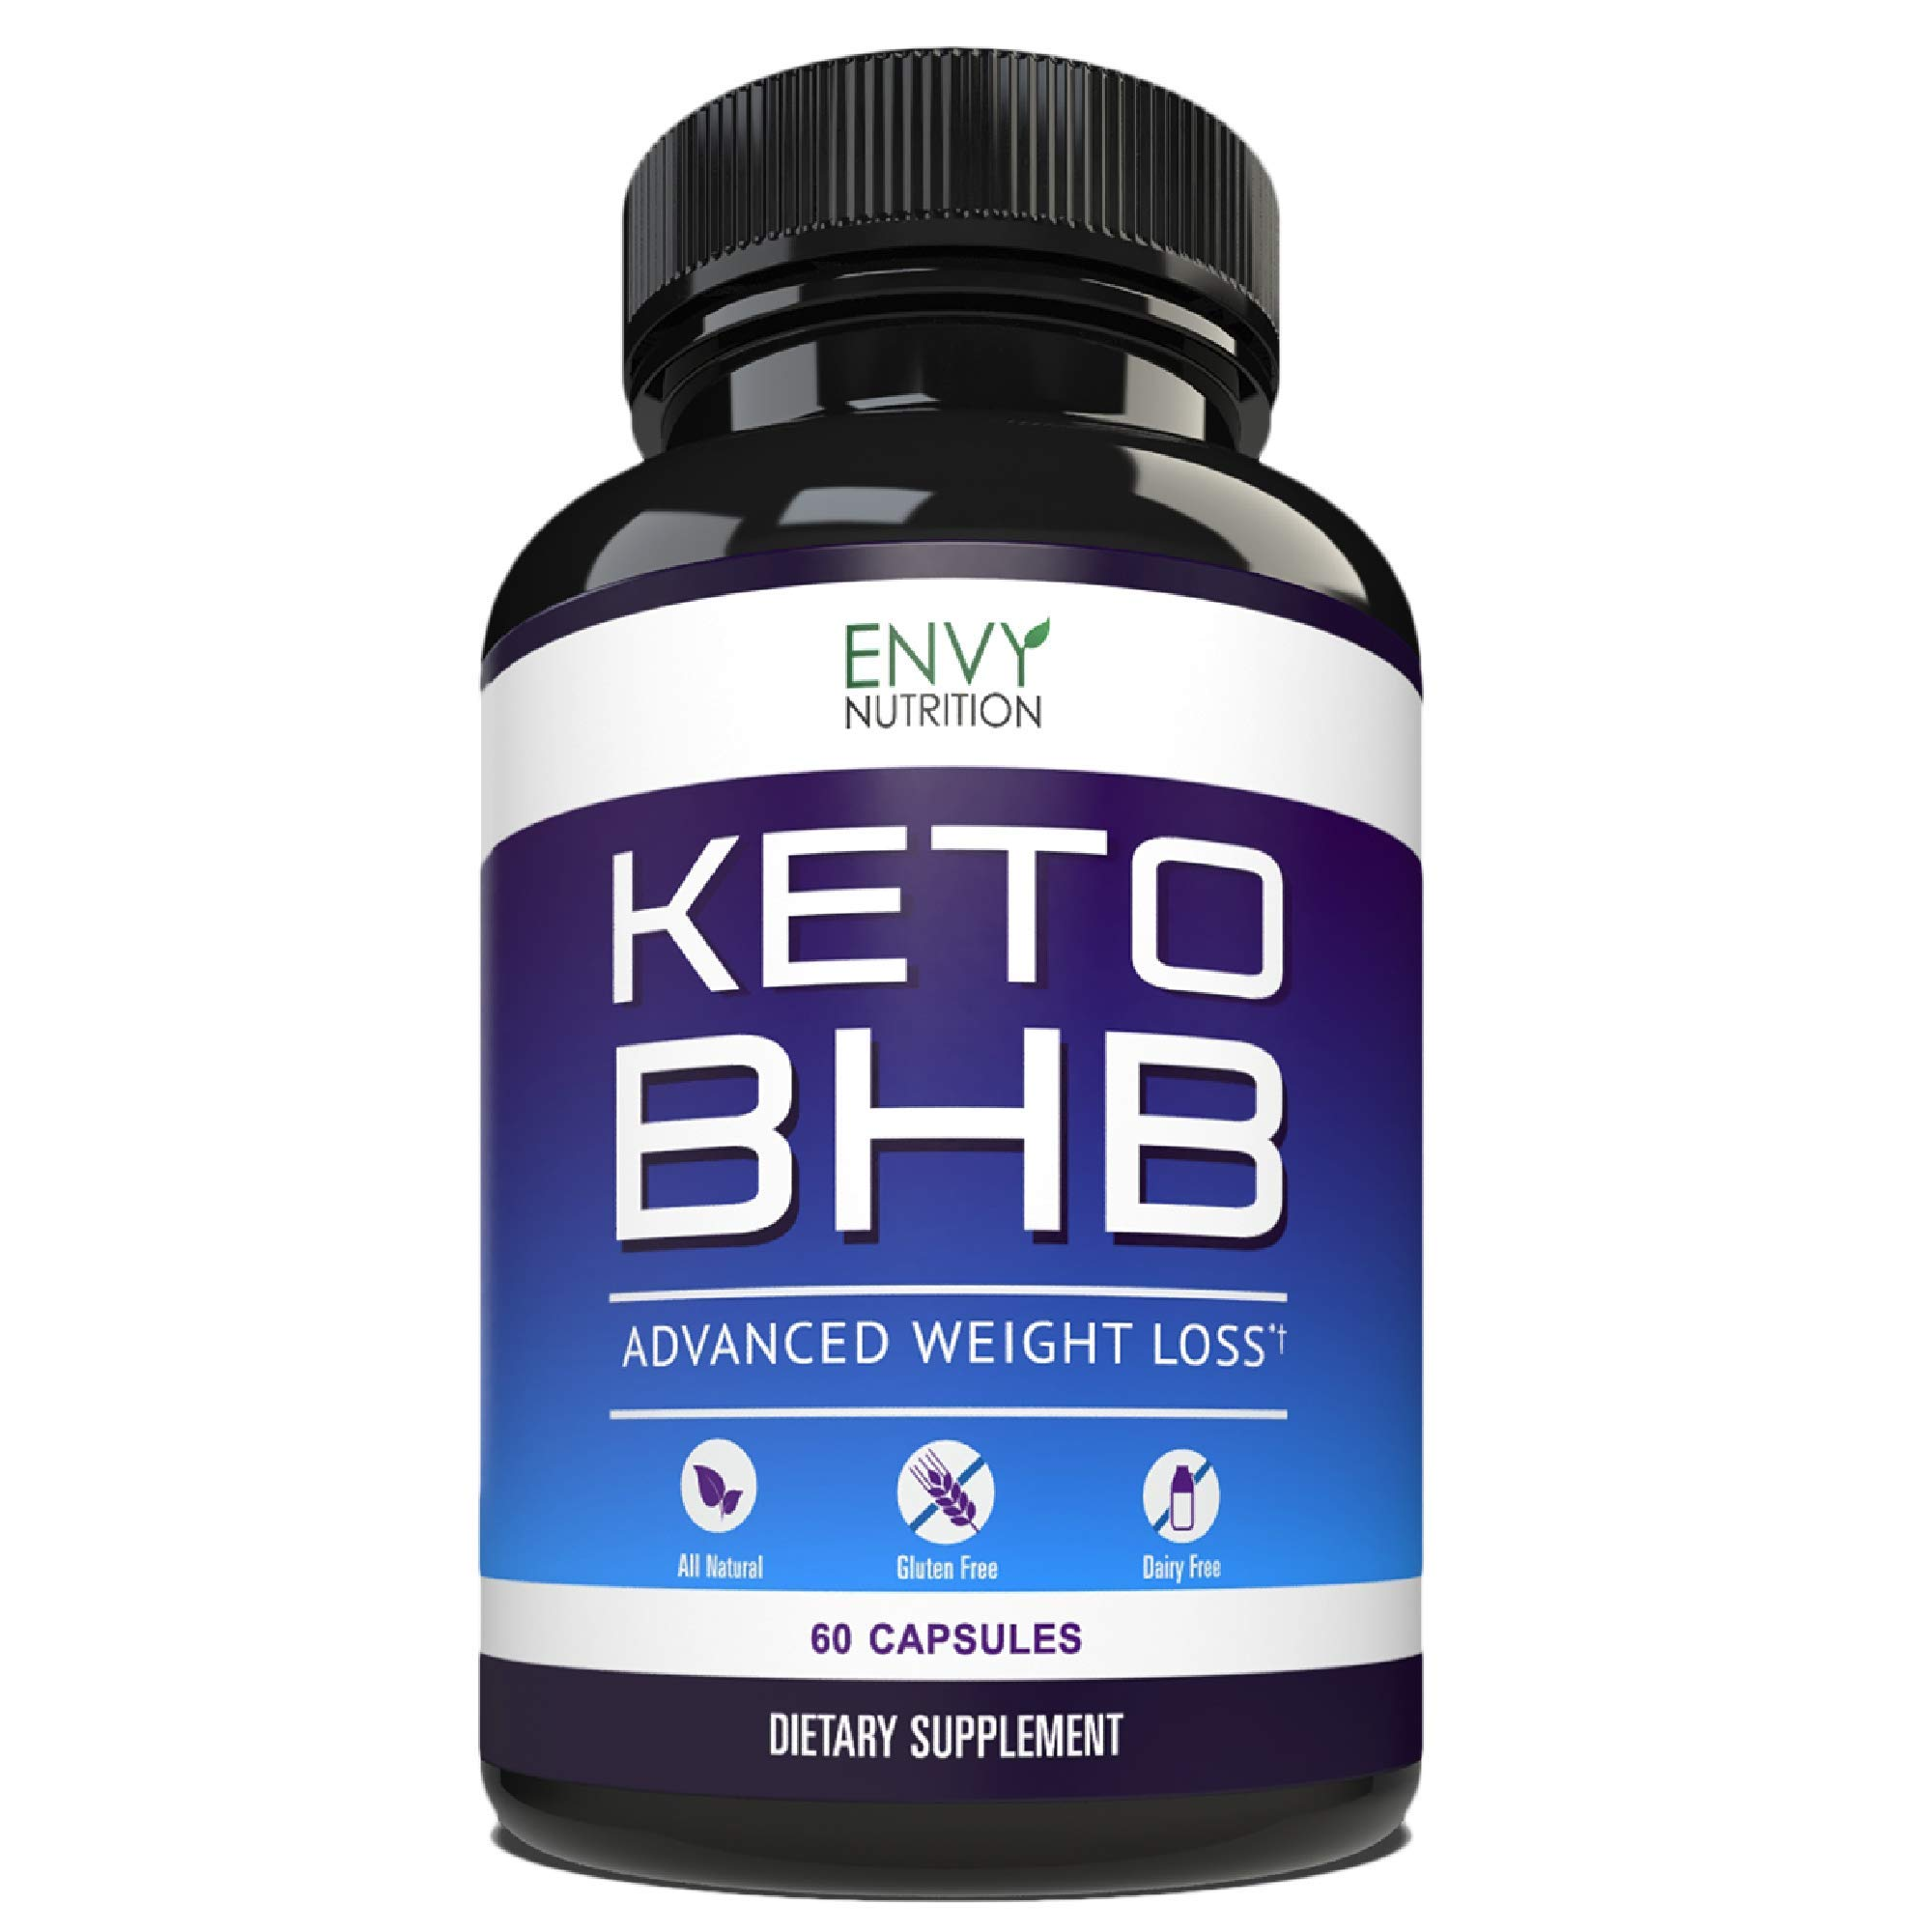 Best Keto Diet Pills - Advanced Weight Loss - BHB Salts Support Fat Burning, Ketosis, Improved Energy and Enhanced Focus by Envy Nutrition (Image #1)